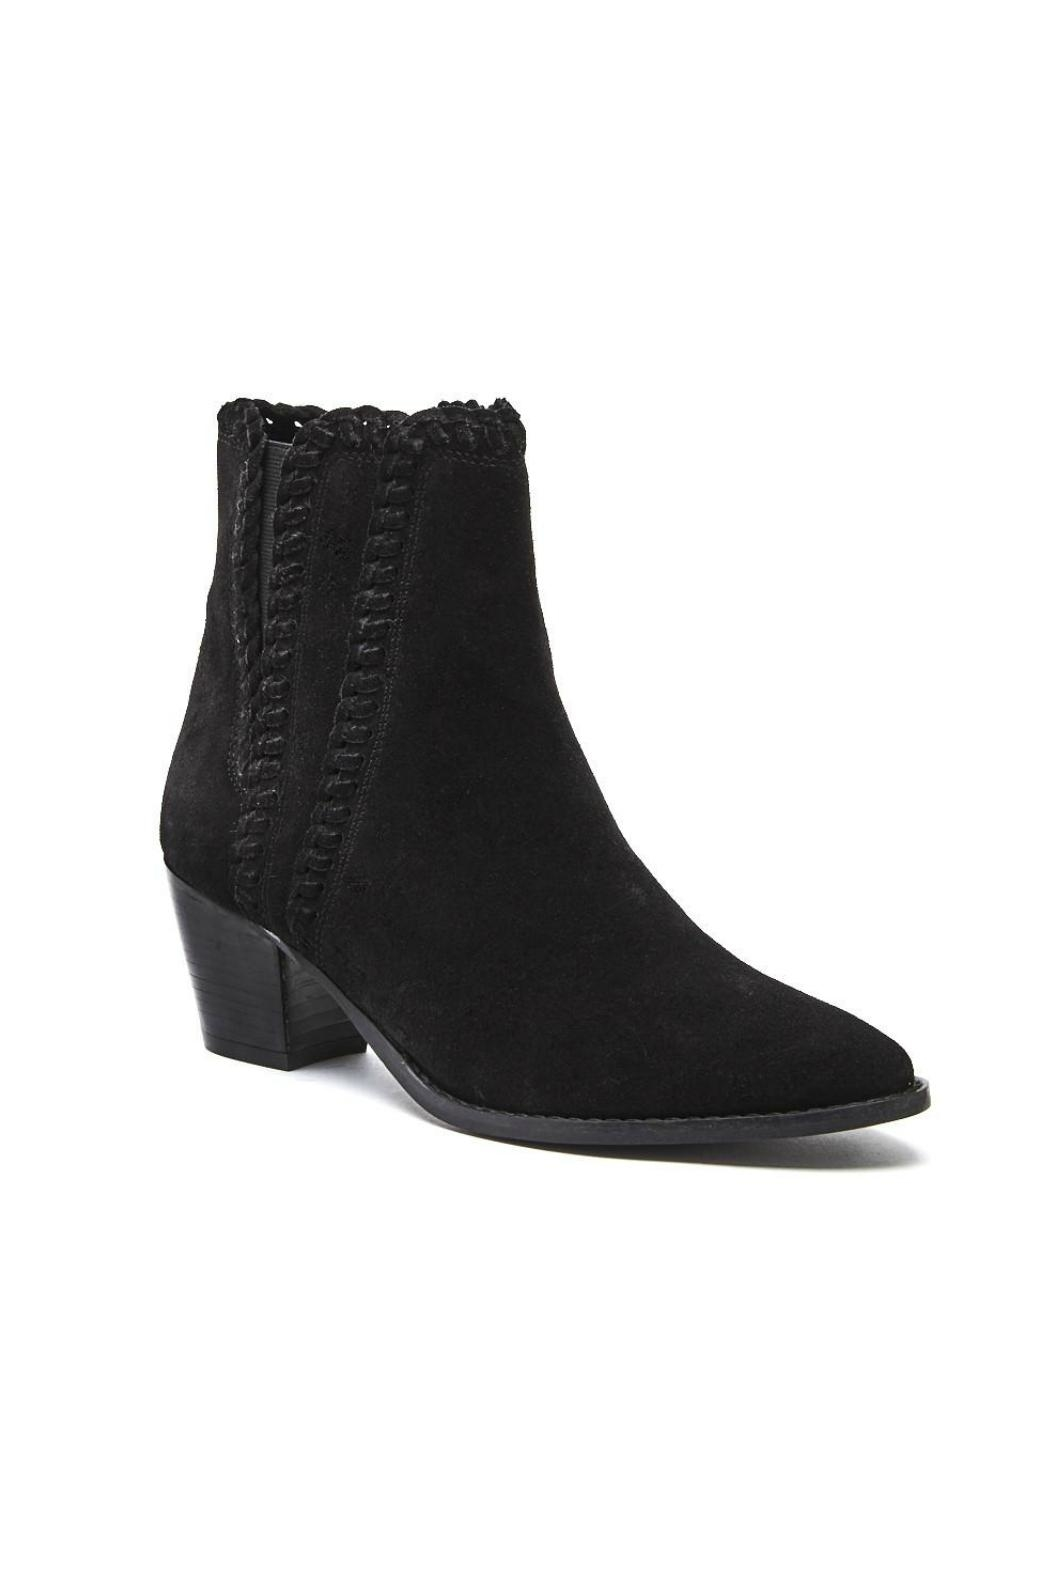 Matisse Footwear Willow Bootie w Stitching Detail - Front Full Image